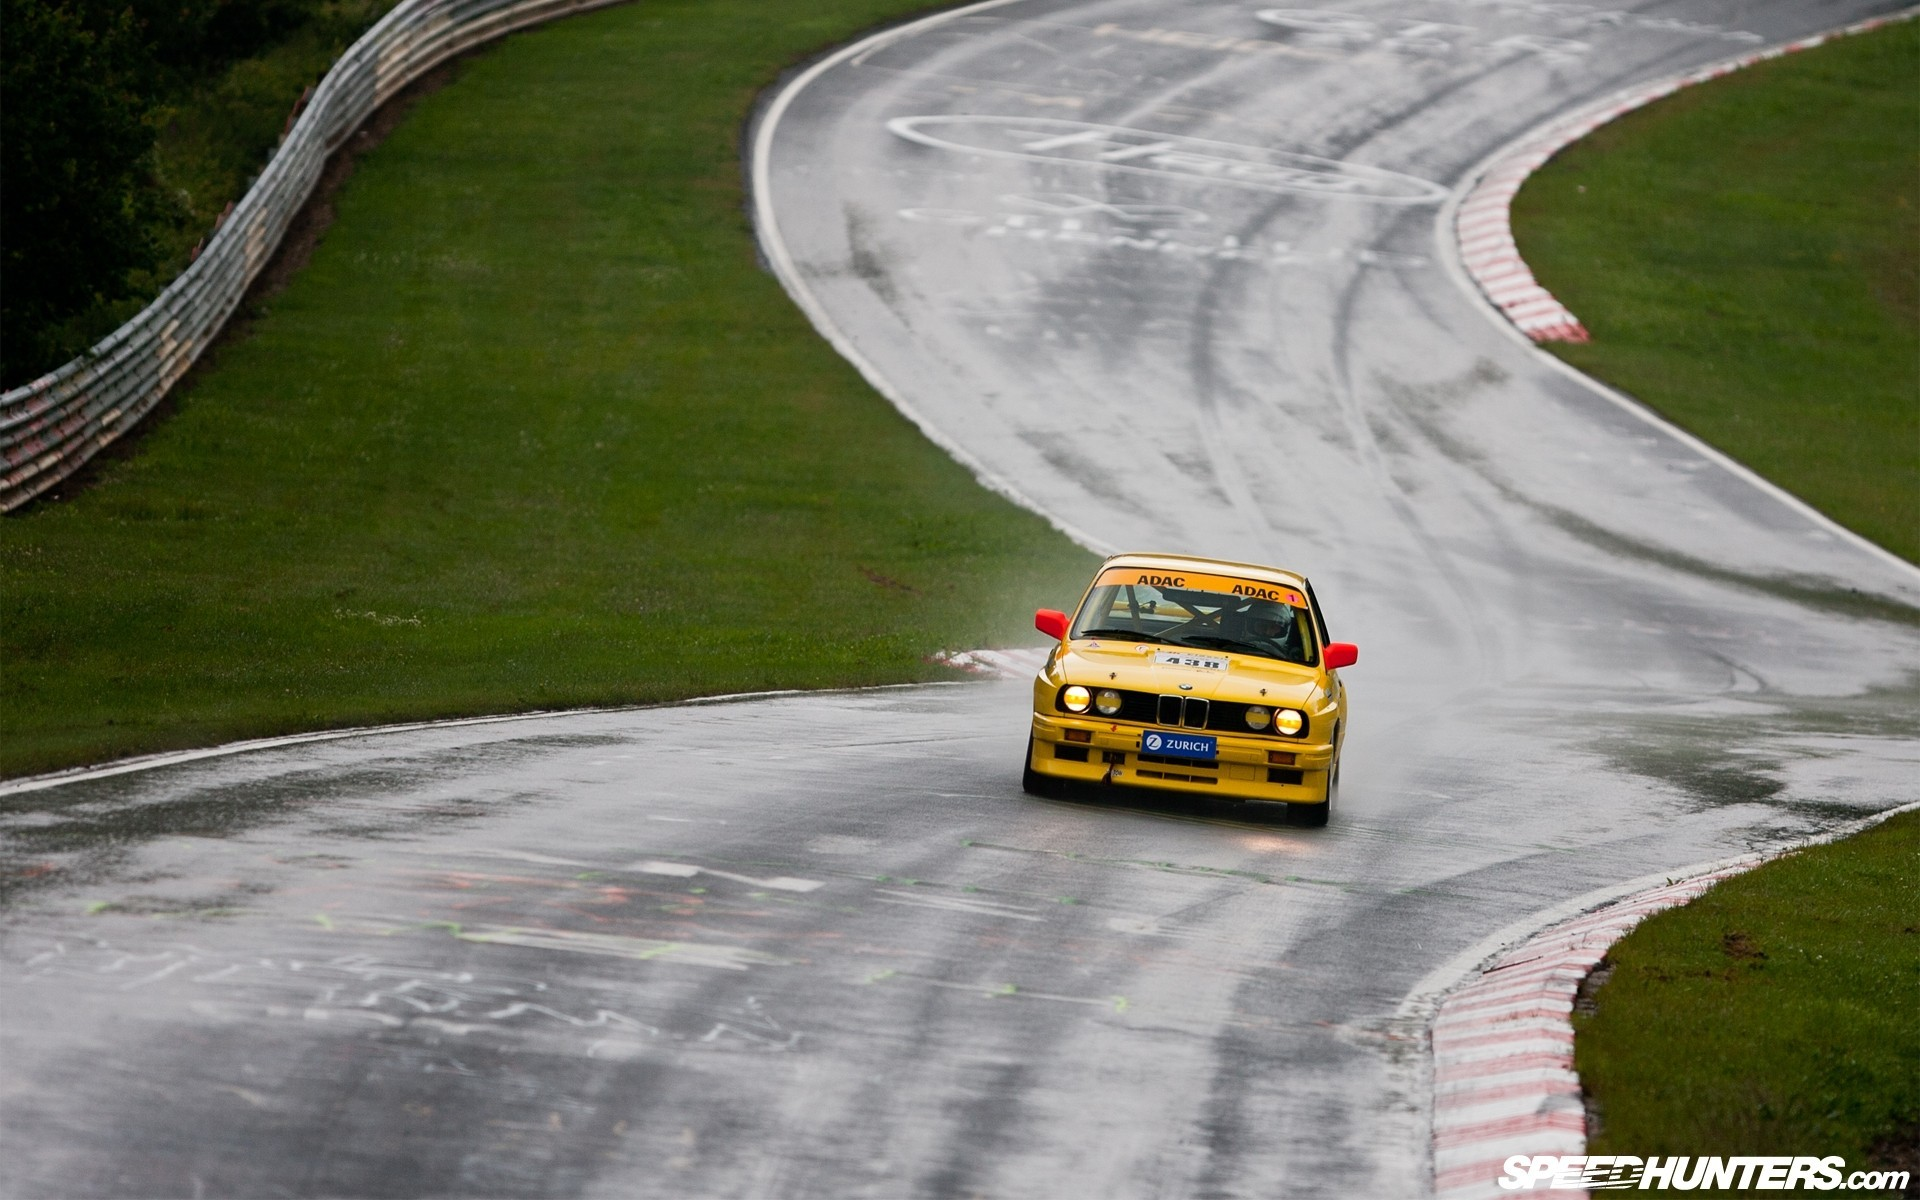 cars BMW Speedway BMW E30 Nürburgring HD Wallpaper